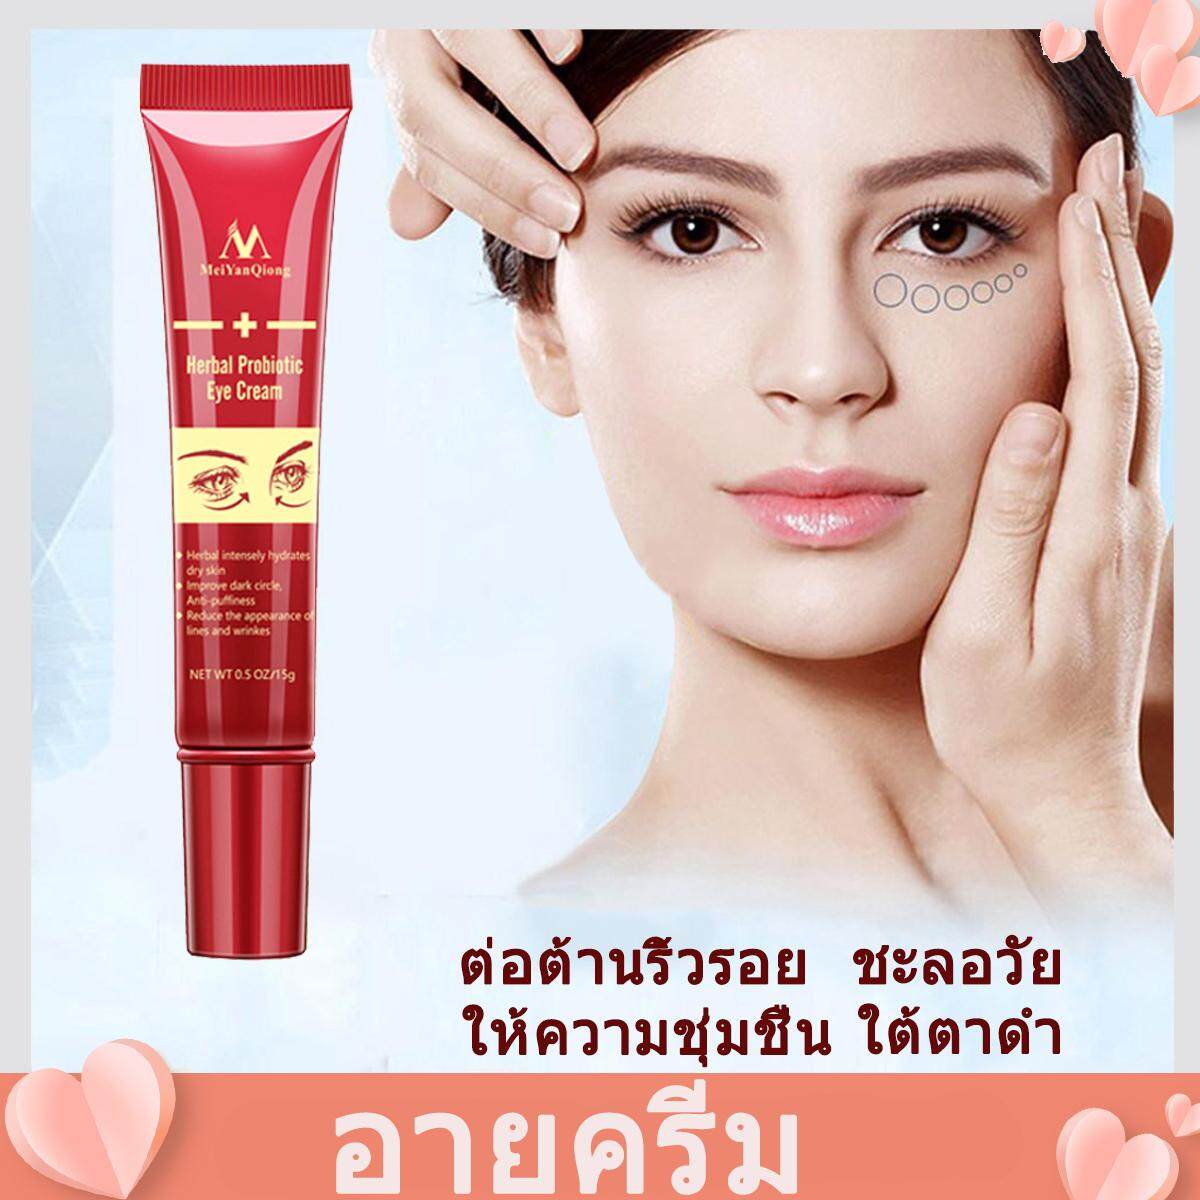 MeiYanQiong Eye Cream Anti-aging anti wrinkle moisture Remove Dark Circles Puffiness Repair Eyes Bags Eyes Skin Care